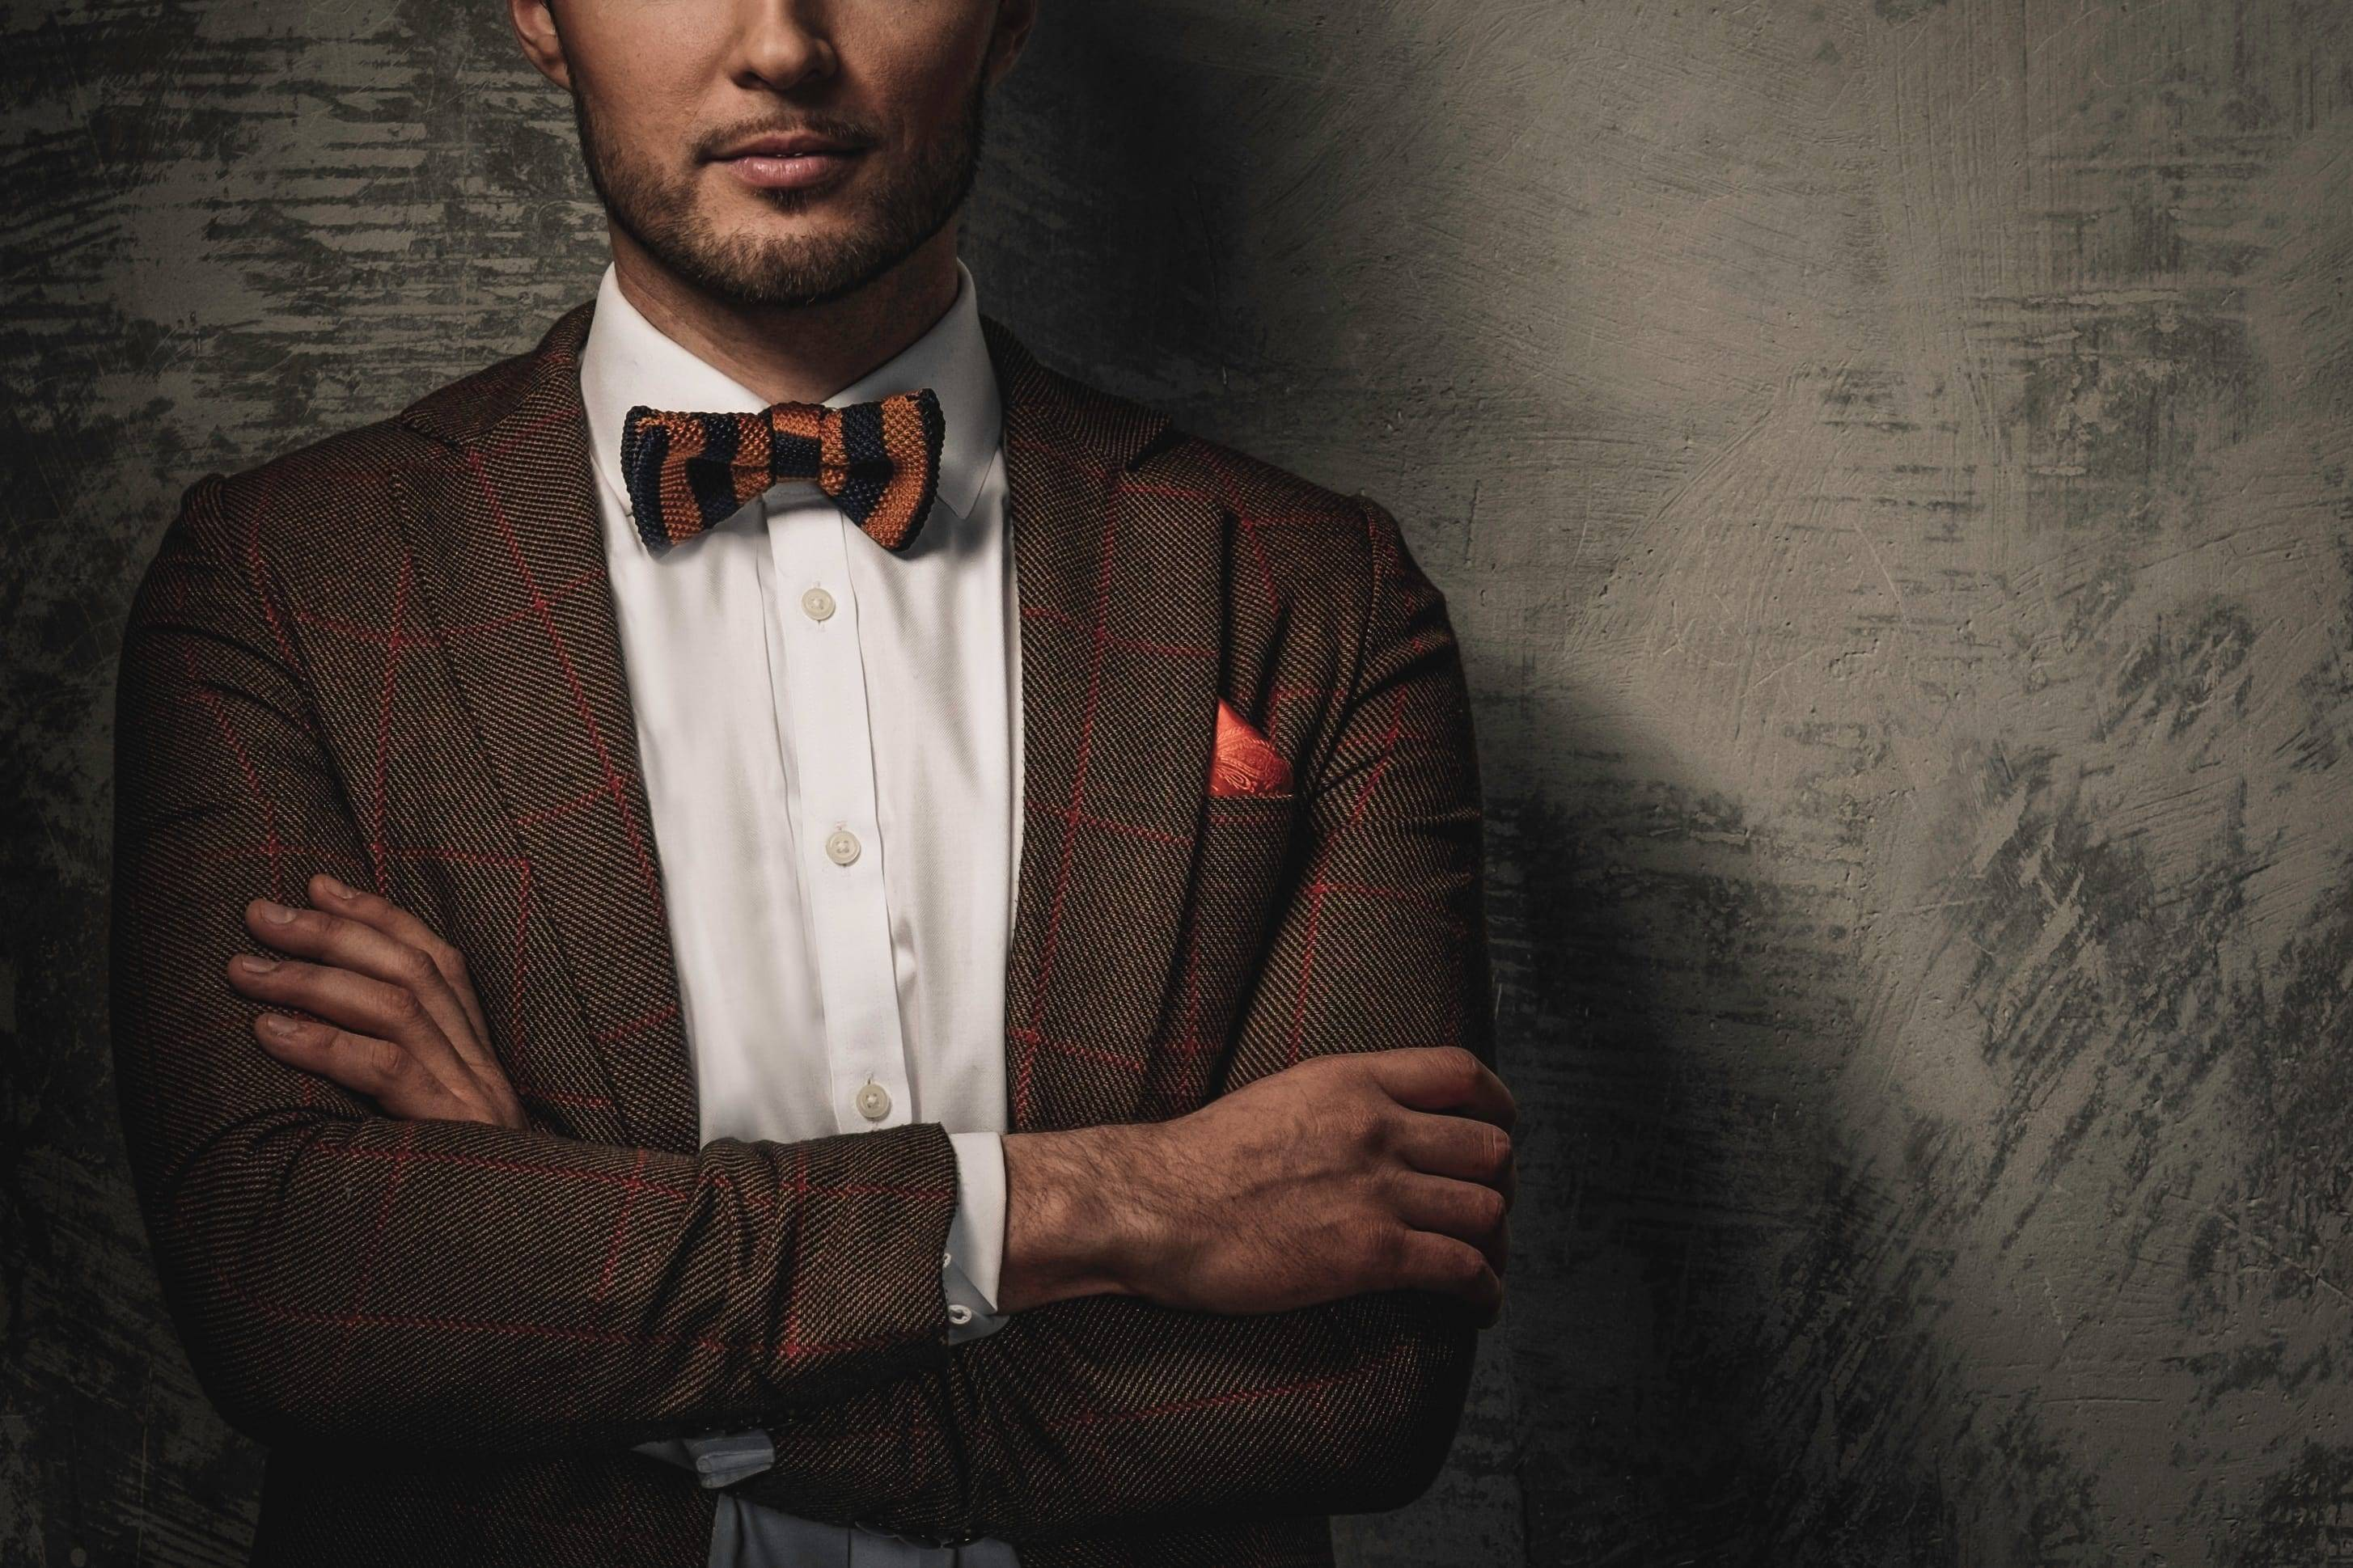 Man in textured windowpane suit and bowtie poses with arms crossed